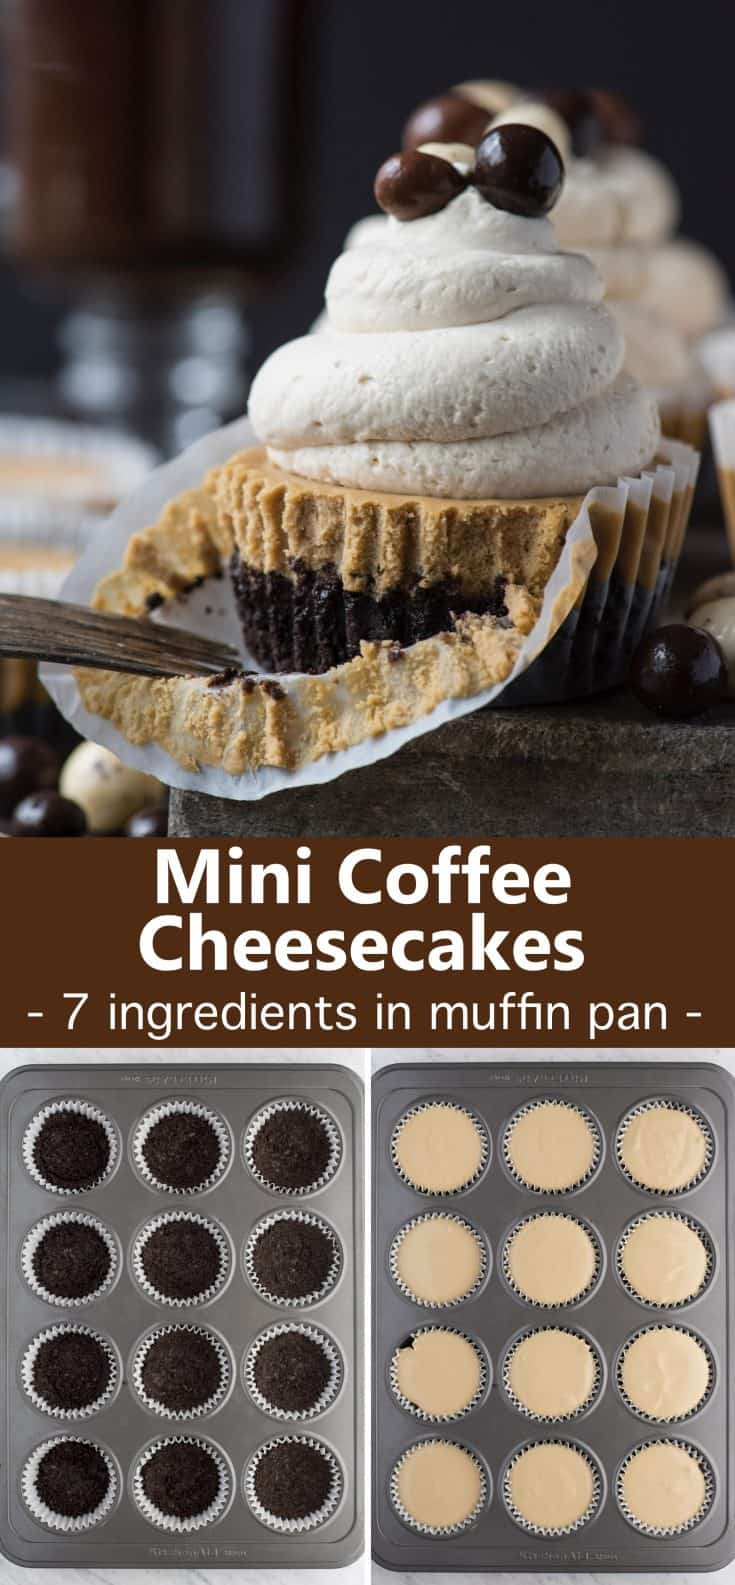 This is a crowd favorite mini coffee cheesecake recipe that you'll use over and over! The whole recipe is only 7 ingredients and you make it in a regular size muffin pan!  Plus, you can do an oreo crust or graham cracker crust for these mini espresso cheesecakes.  #minicheesecake #coffeecheesecake #minicoffeecheesecake #espressocheesecake #mochacheesecake